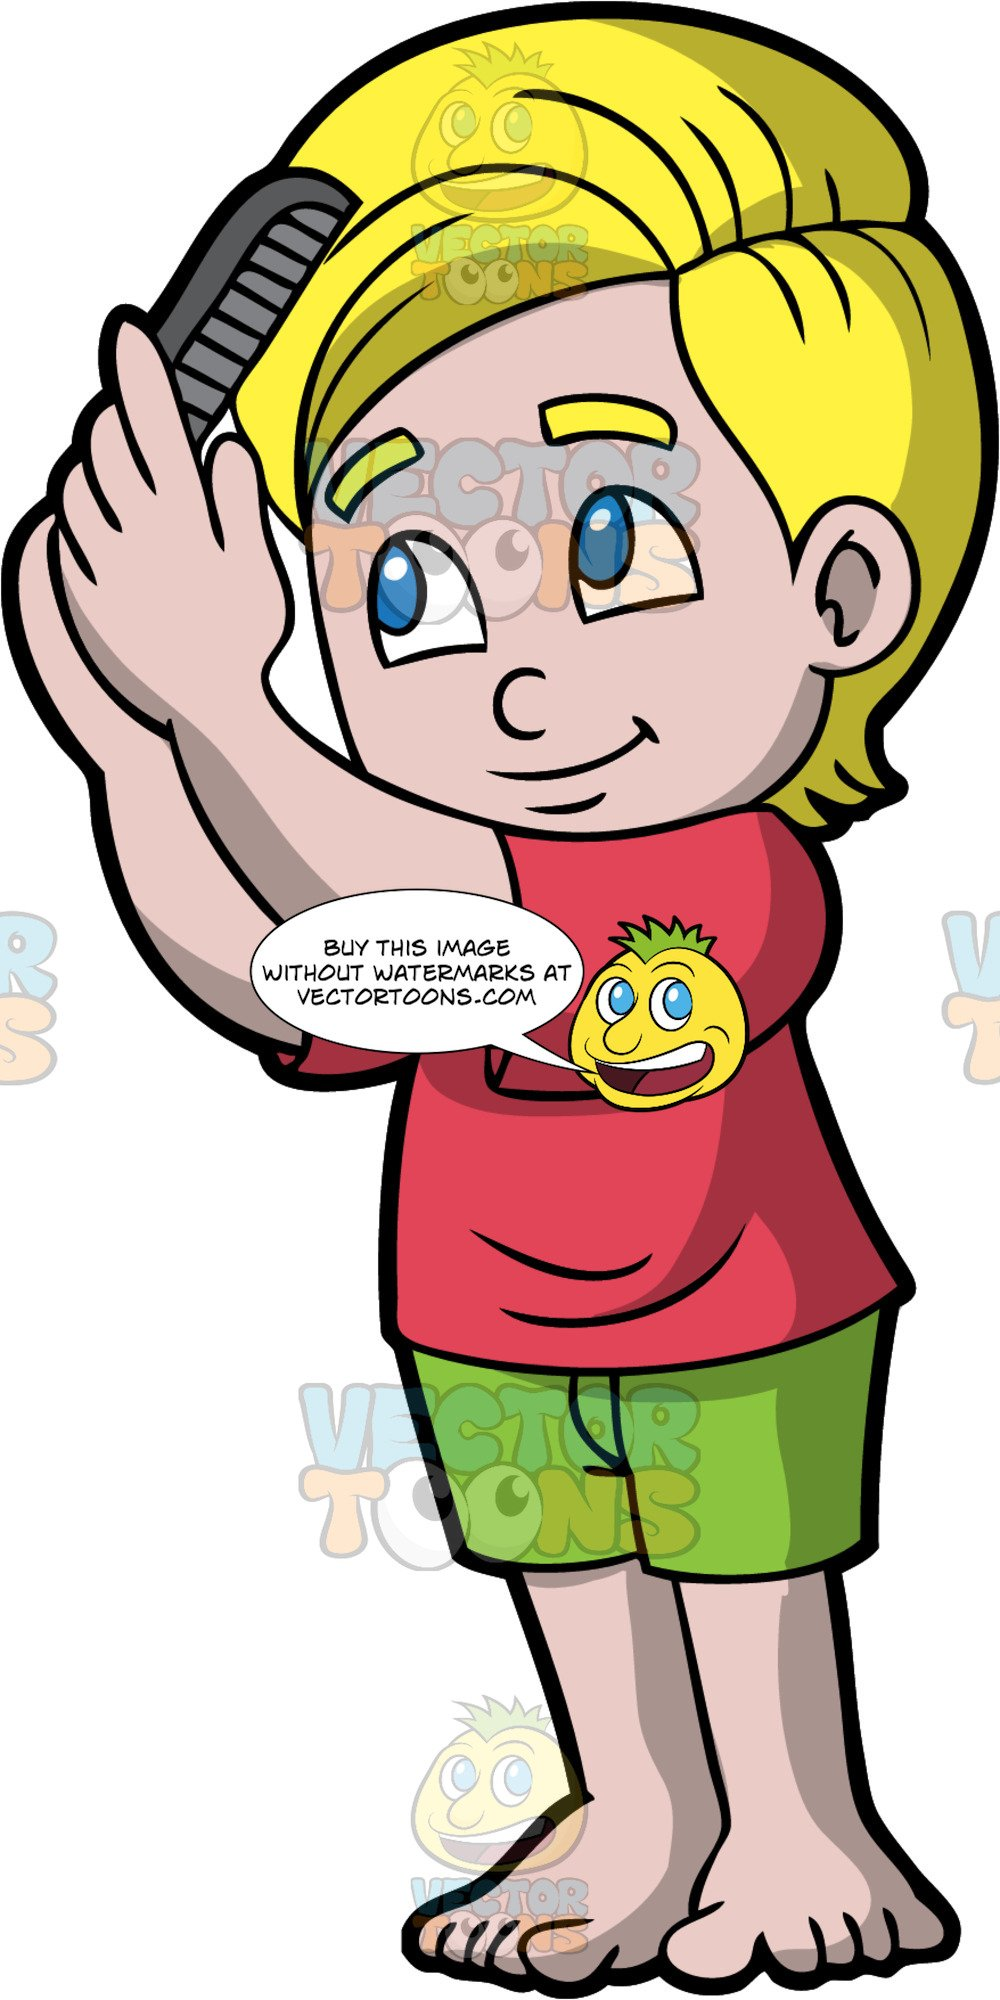 Comb clipart combed hair. A boy combing his